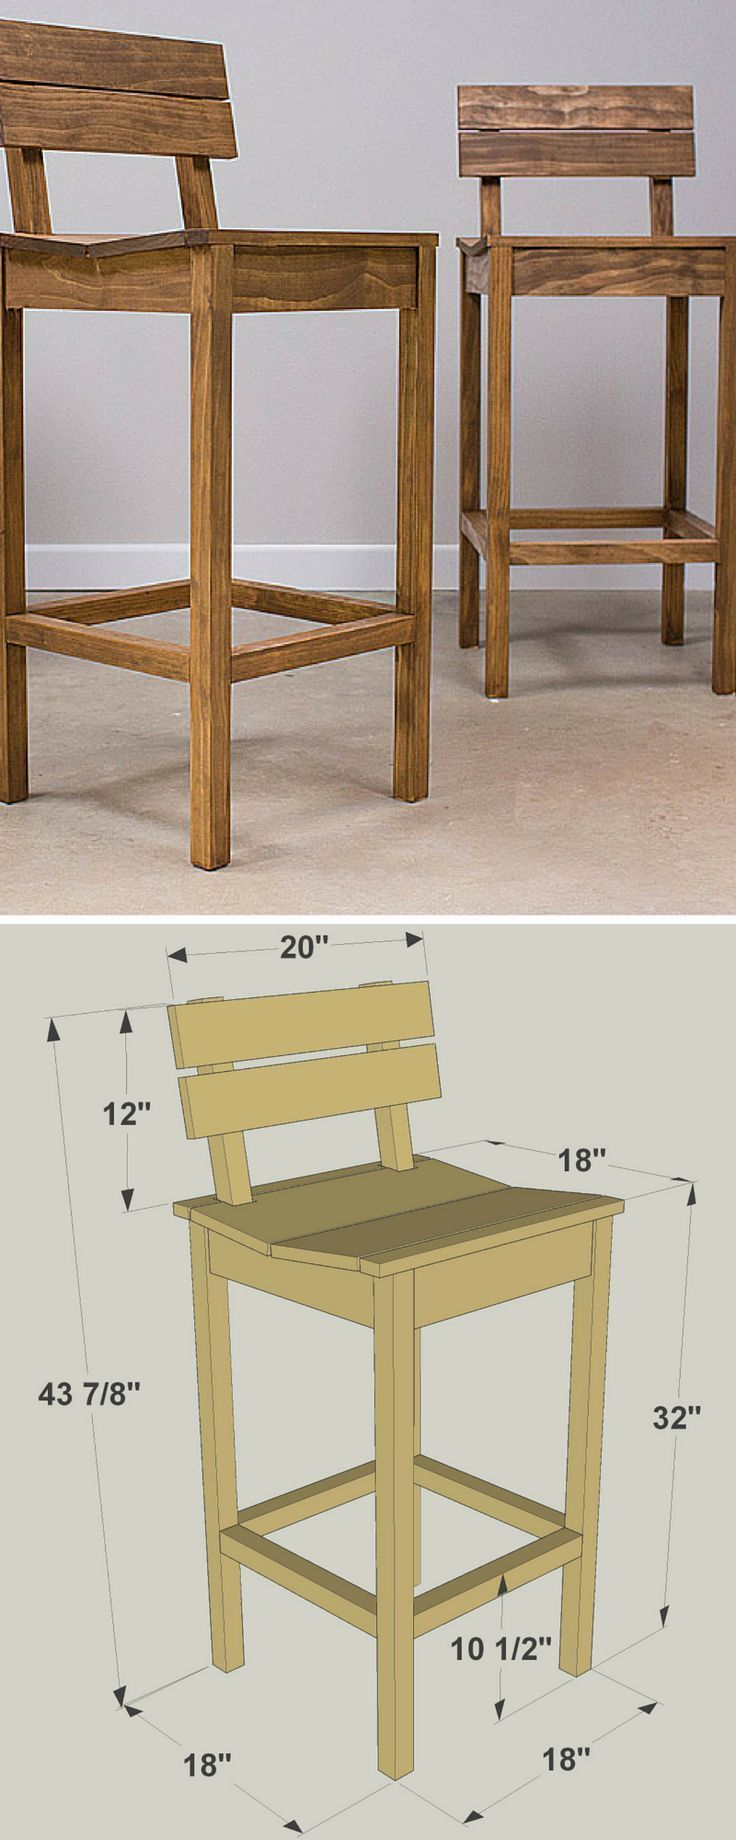 These tall pub chairs look great, whether you have them sitting at a counter or pair them with a pub table (which we'll show you in another project plan). Plus, the chairs are comfortable thanks to the shaped seat and angled back. Neither of these great features makes the chairs difficult to build. FREE PLANS at http://www.buildsomething.com #woodworking